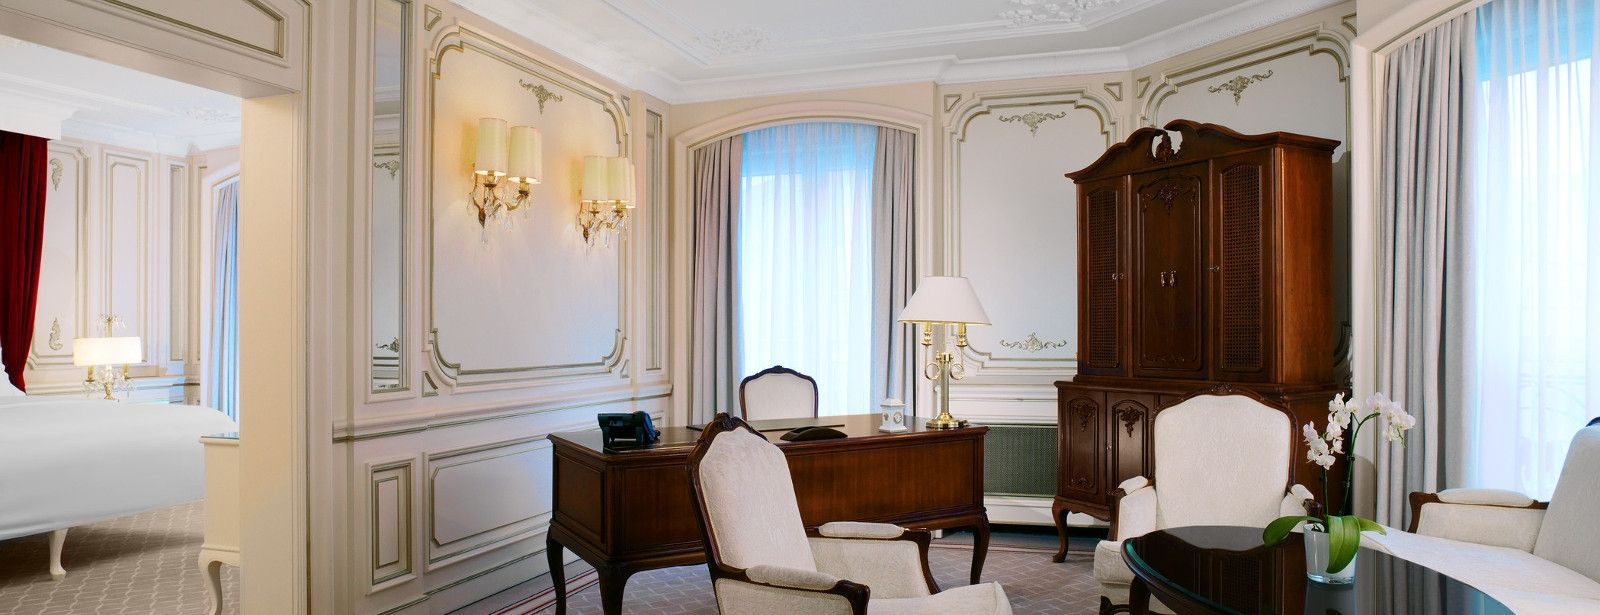 Linving room of the Themed Suite Sanssouci at The Westin hotel Berlin